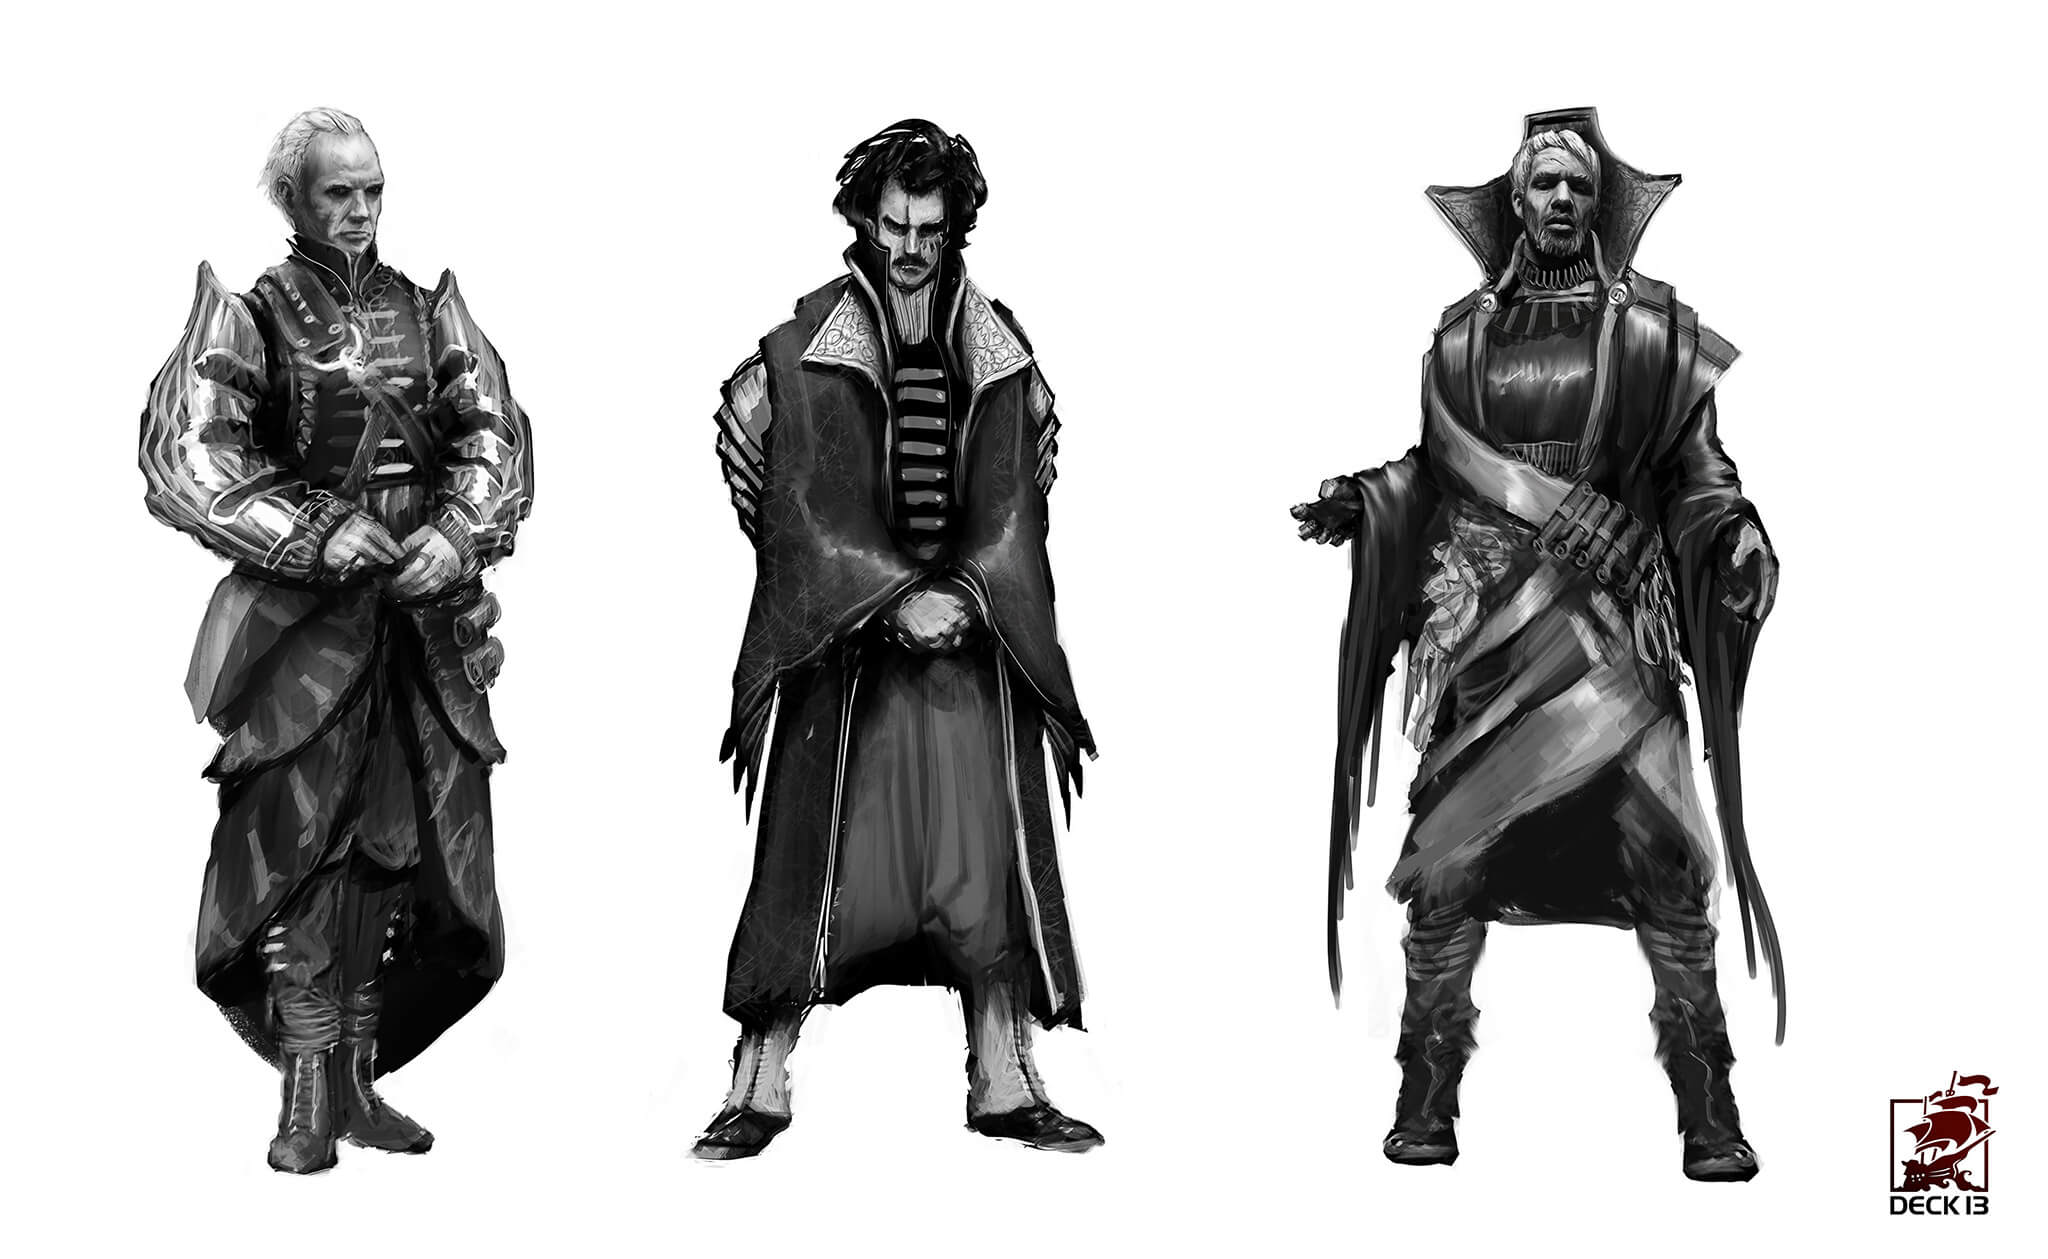 Dead-god-deck13-felix-botho-haas-concept-art-SC_class_mage003